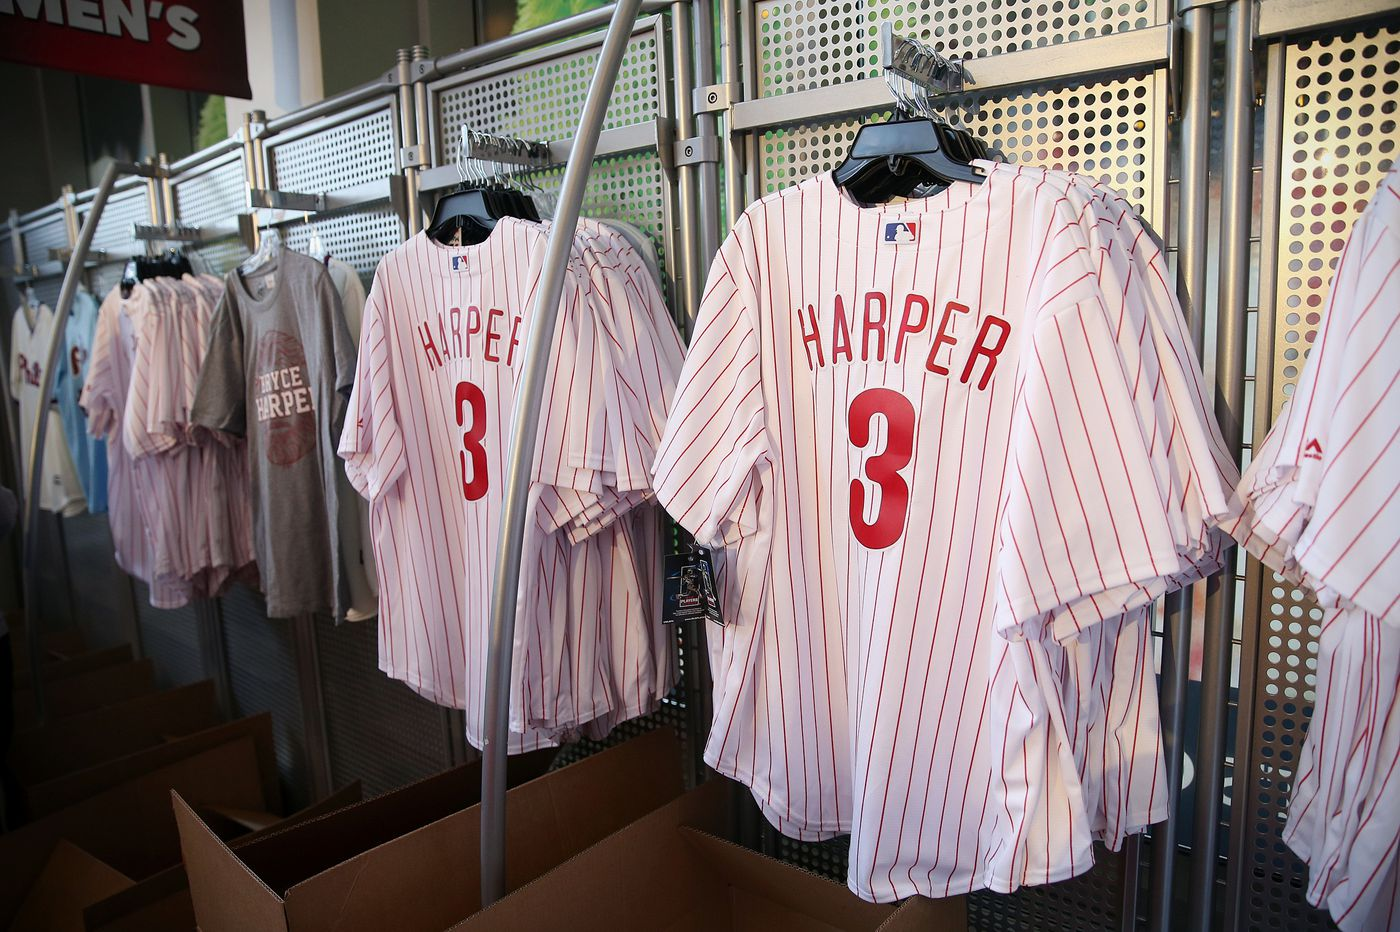 low priced ff51f 50cae Bryce Harper Phillies jersey sales break record in first 24 ...